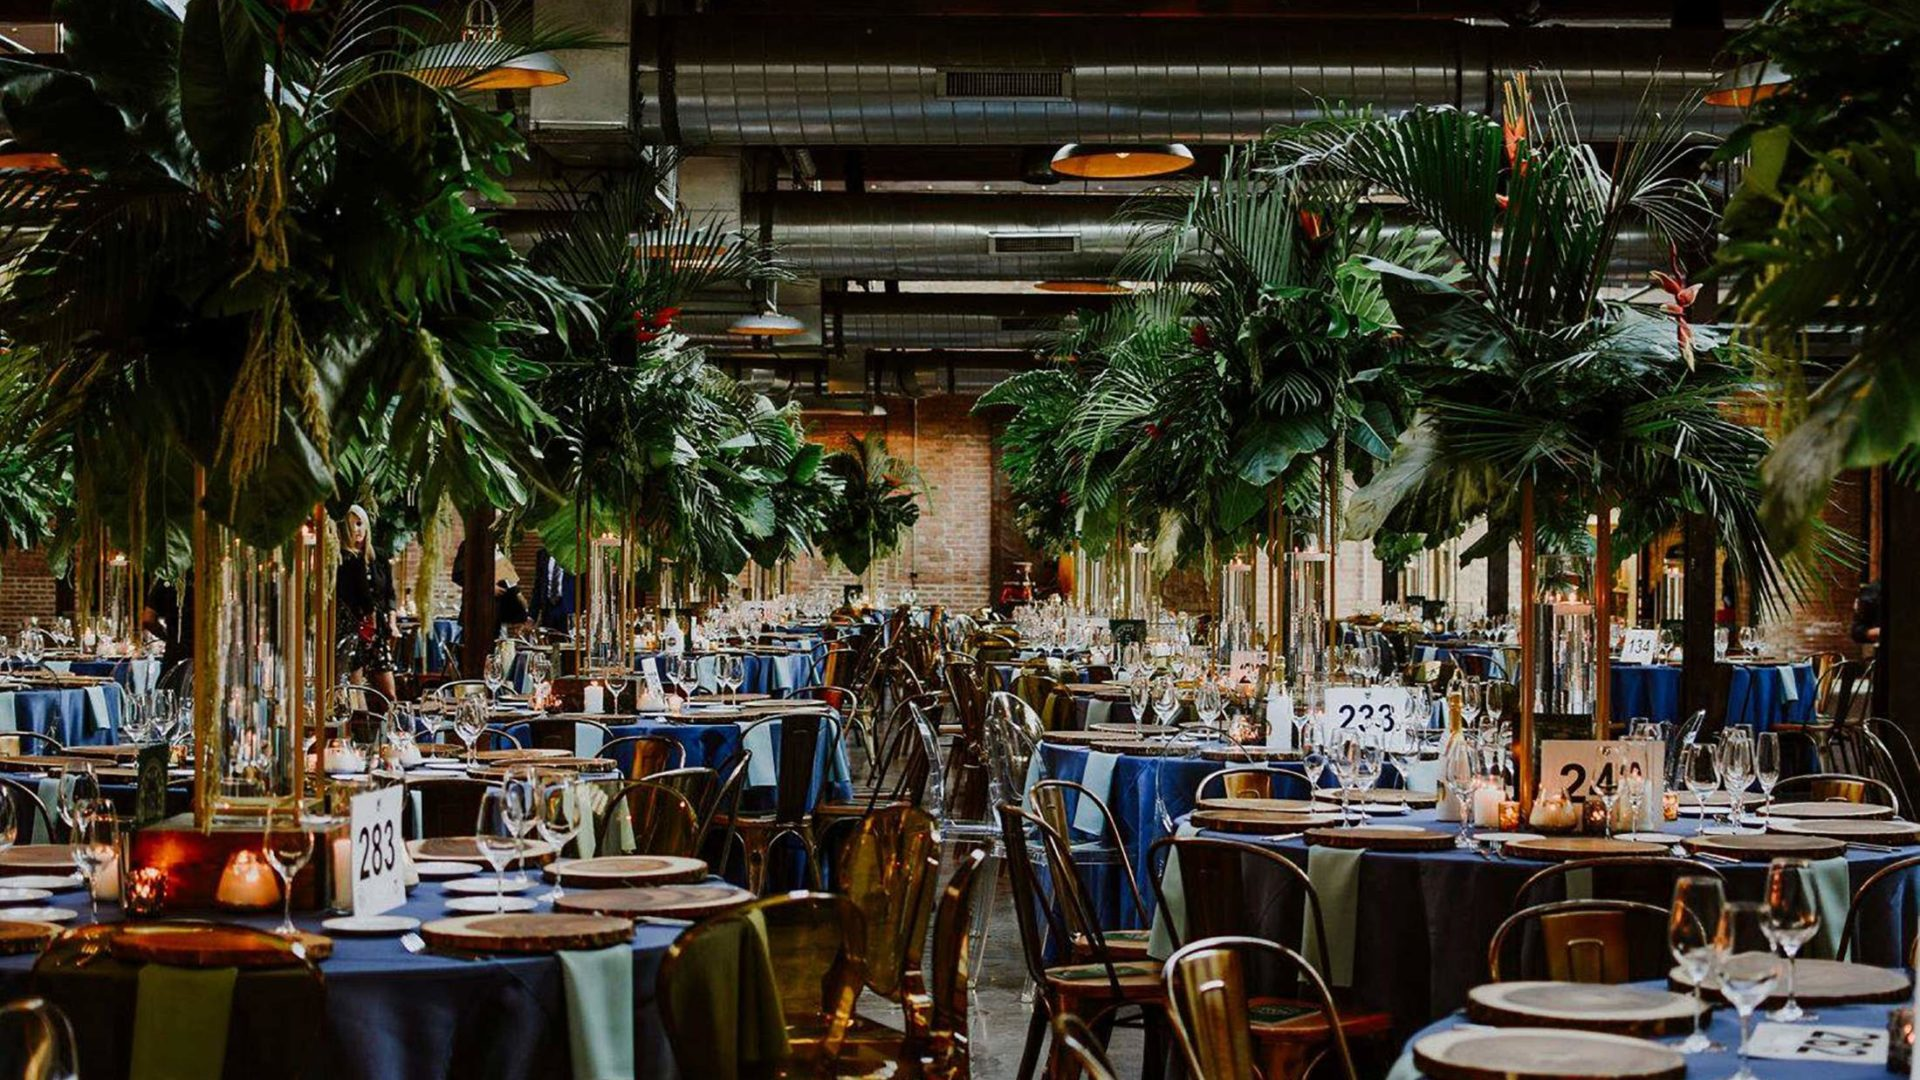 Tables for event with large trees